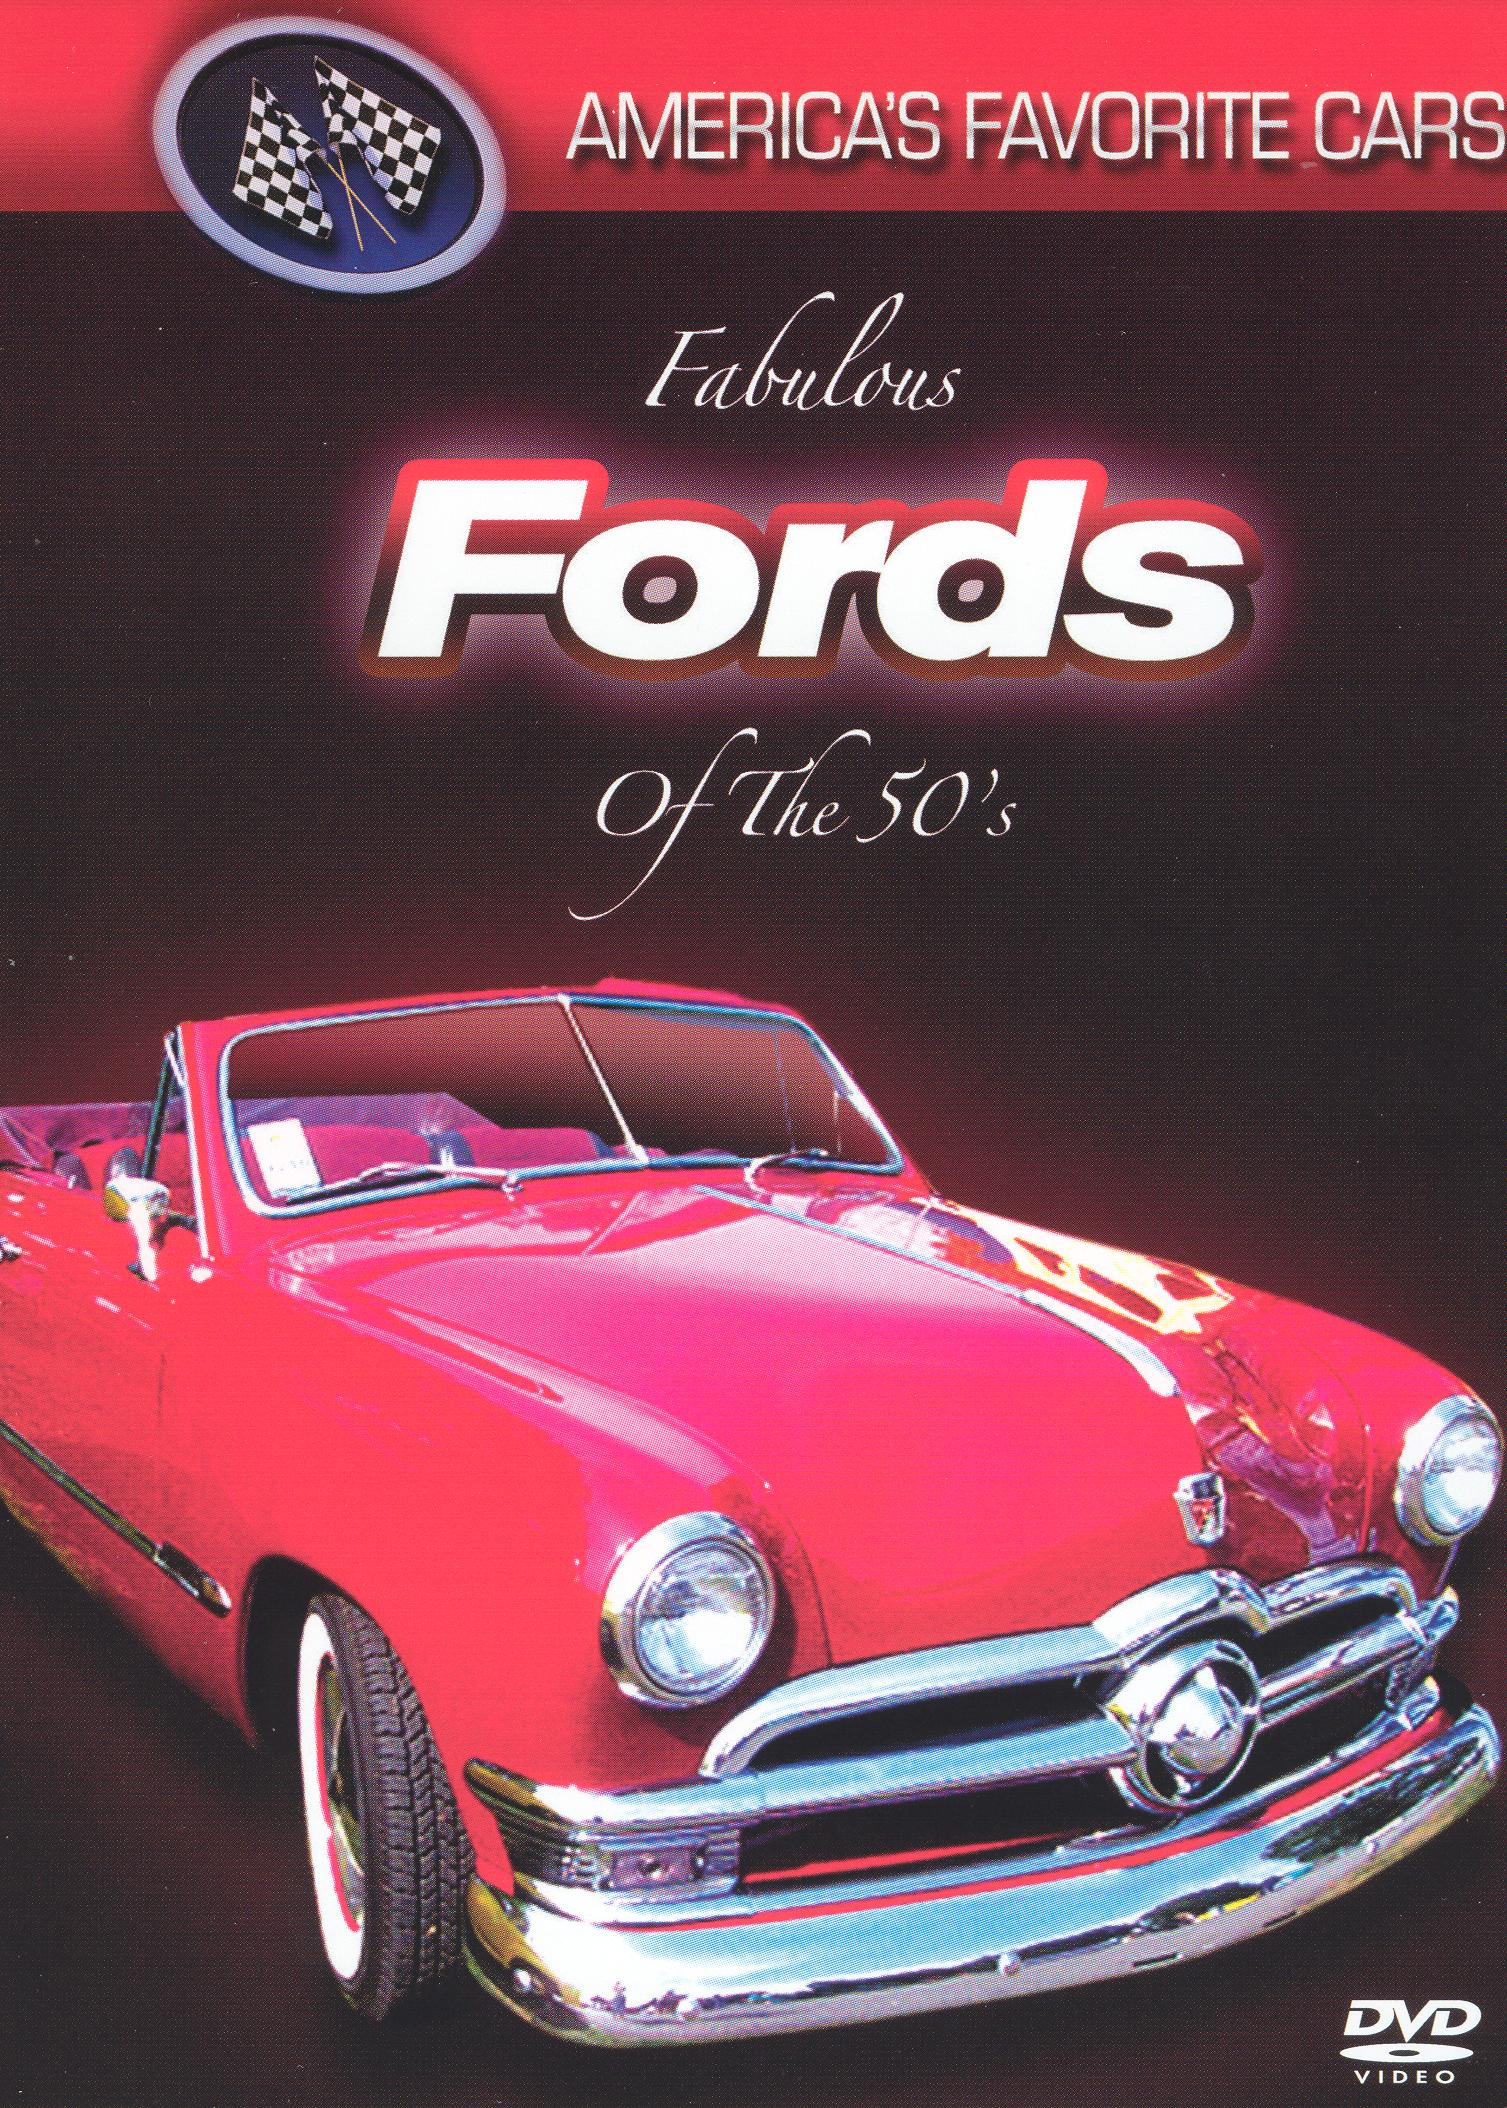 America's Favorite Cars: Fabulous Fords of the 50's